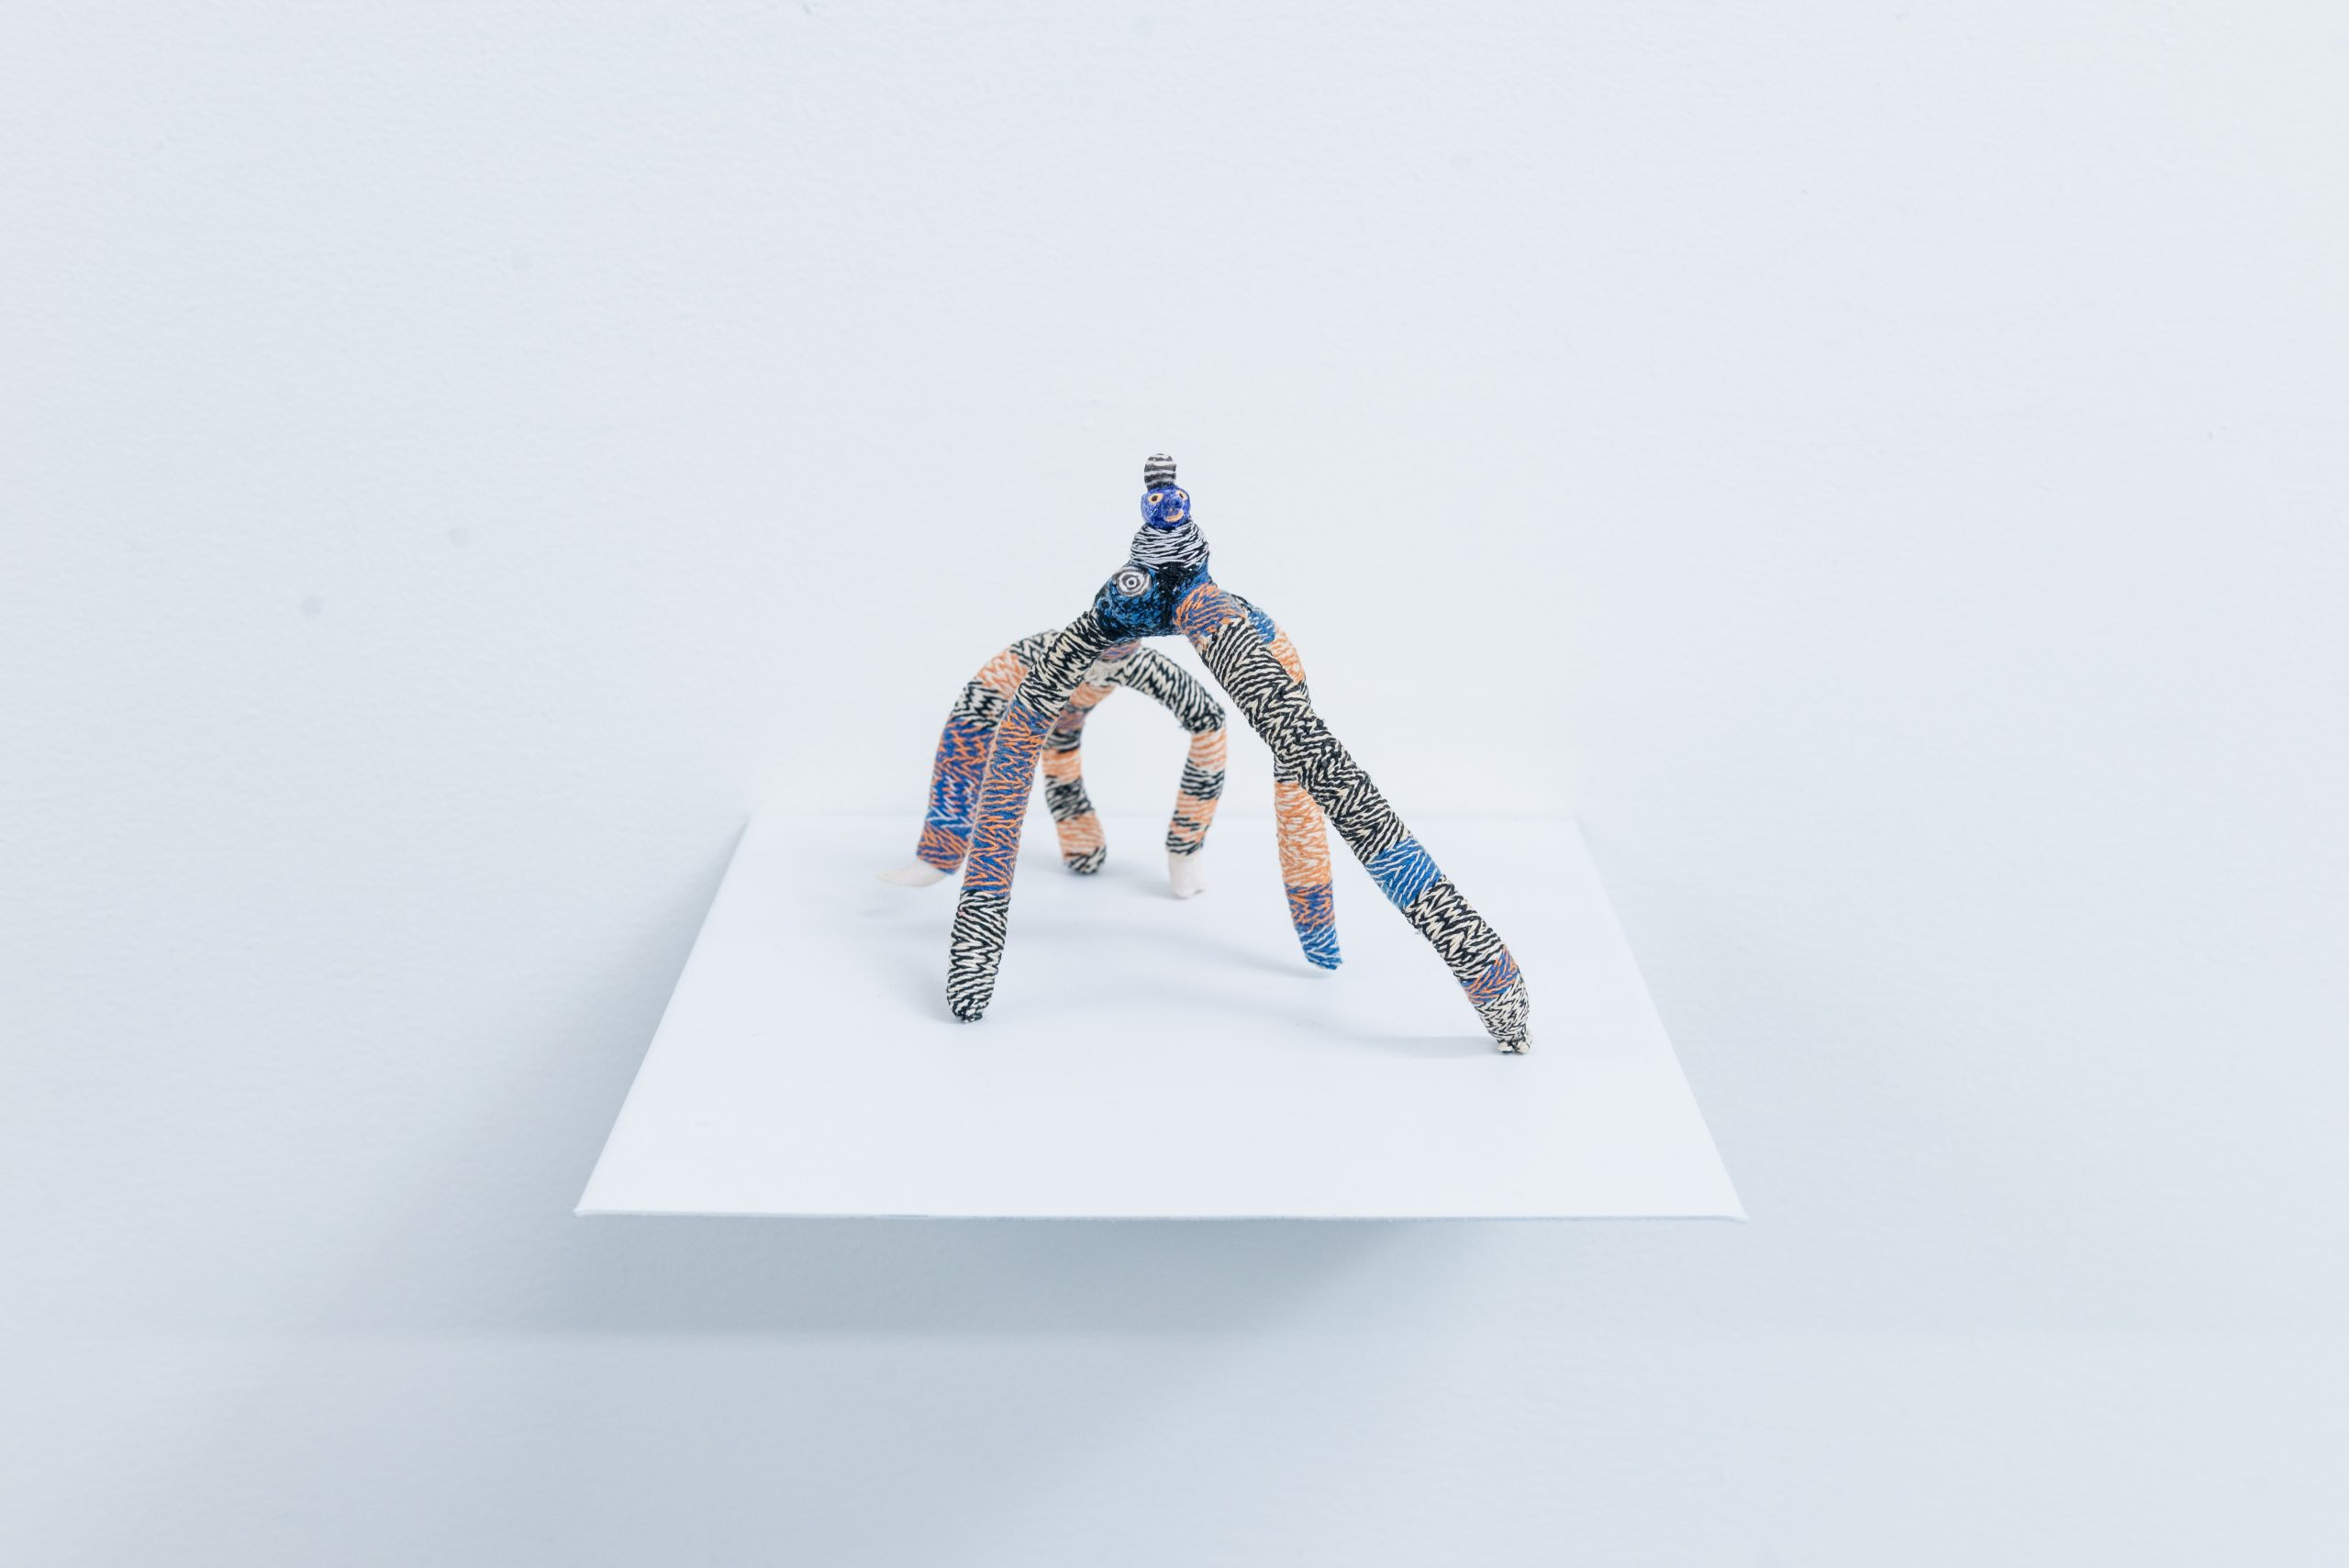 The Creep by Em Kettner; a six-legged, woven, porcelain figure looks straight ahead